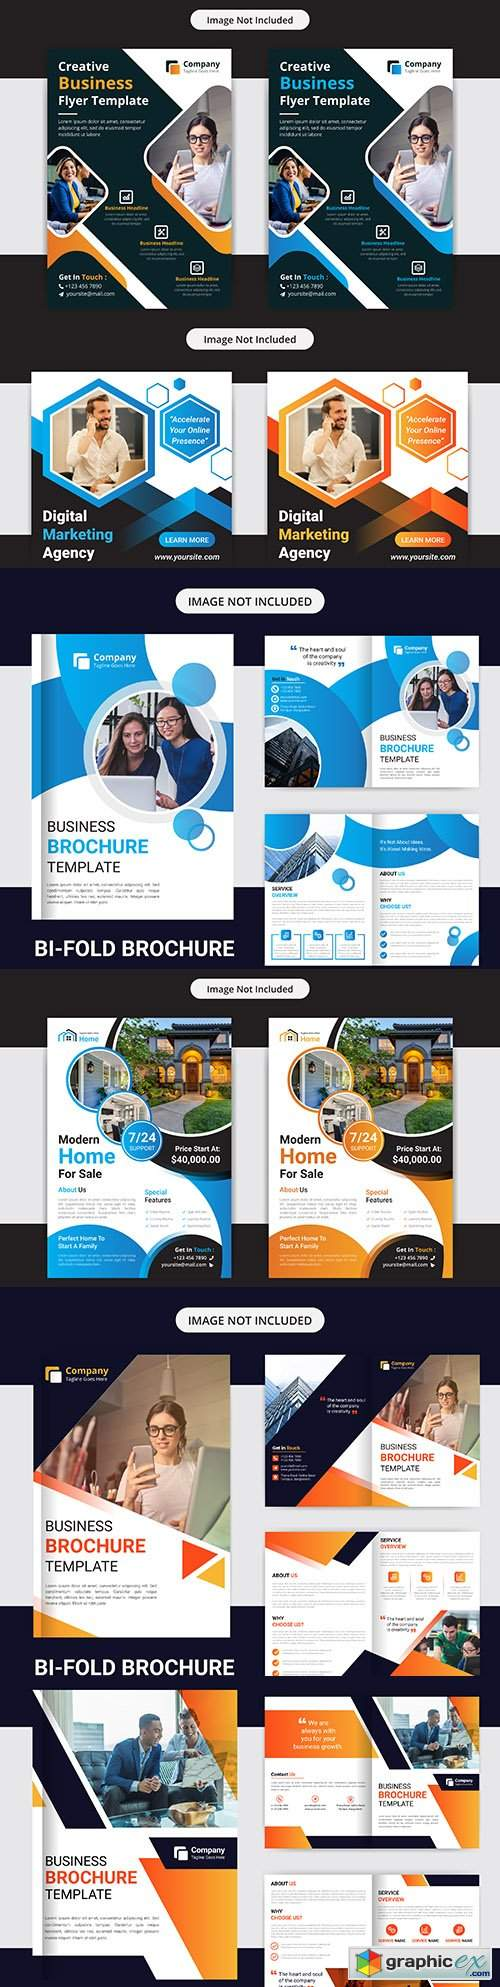 Business flyer and corporate double template brochure